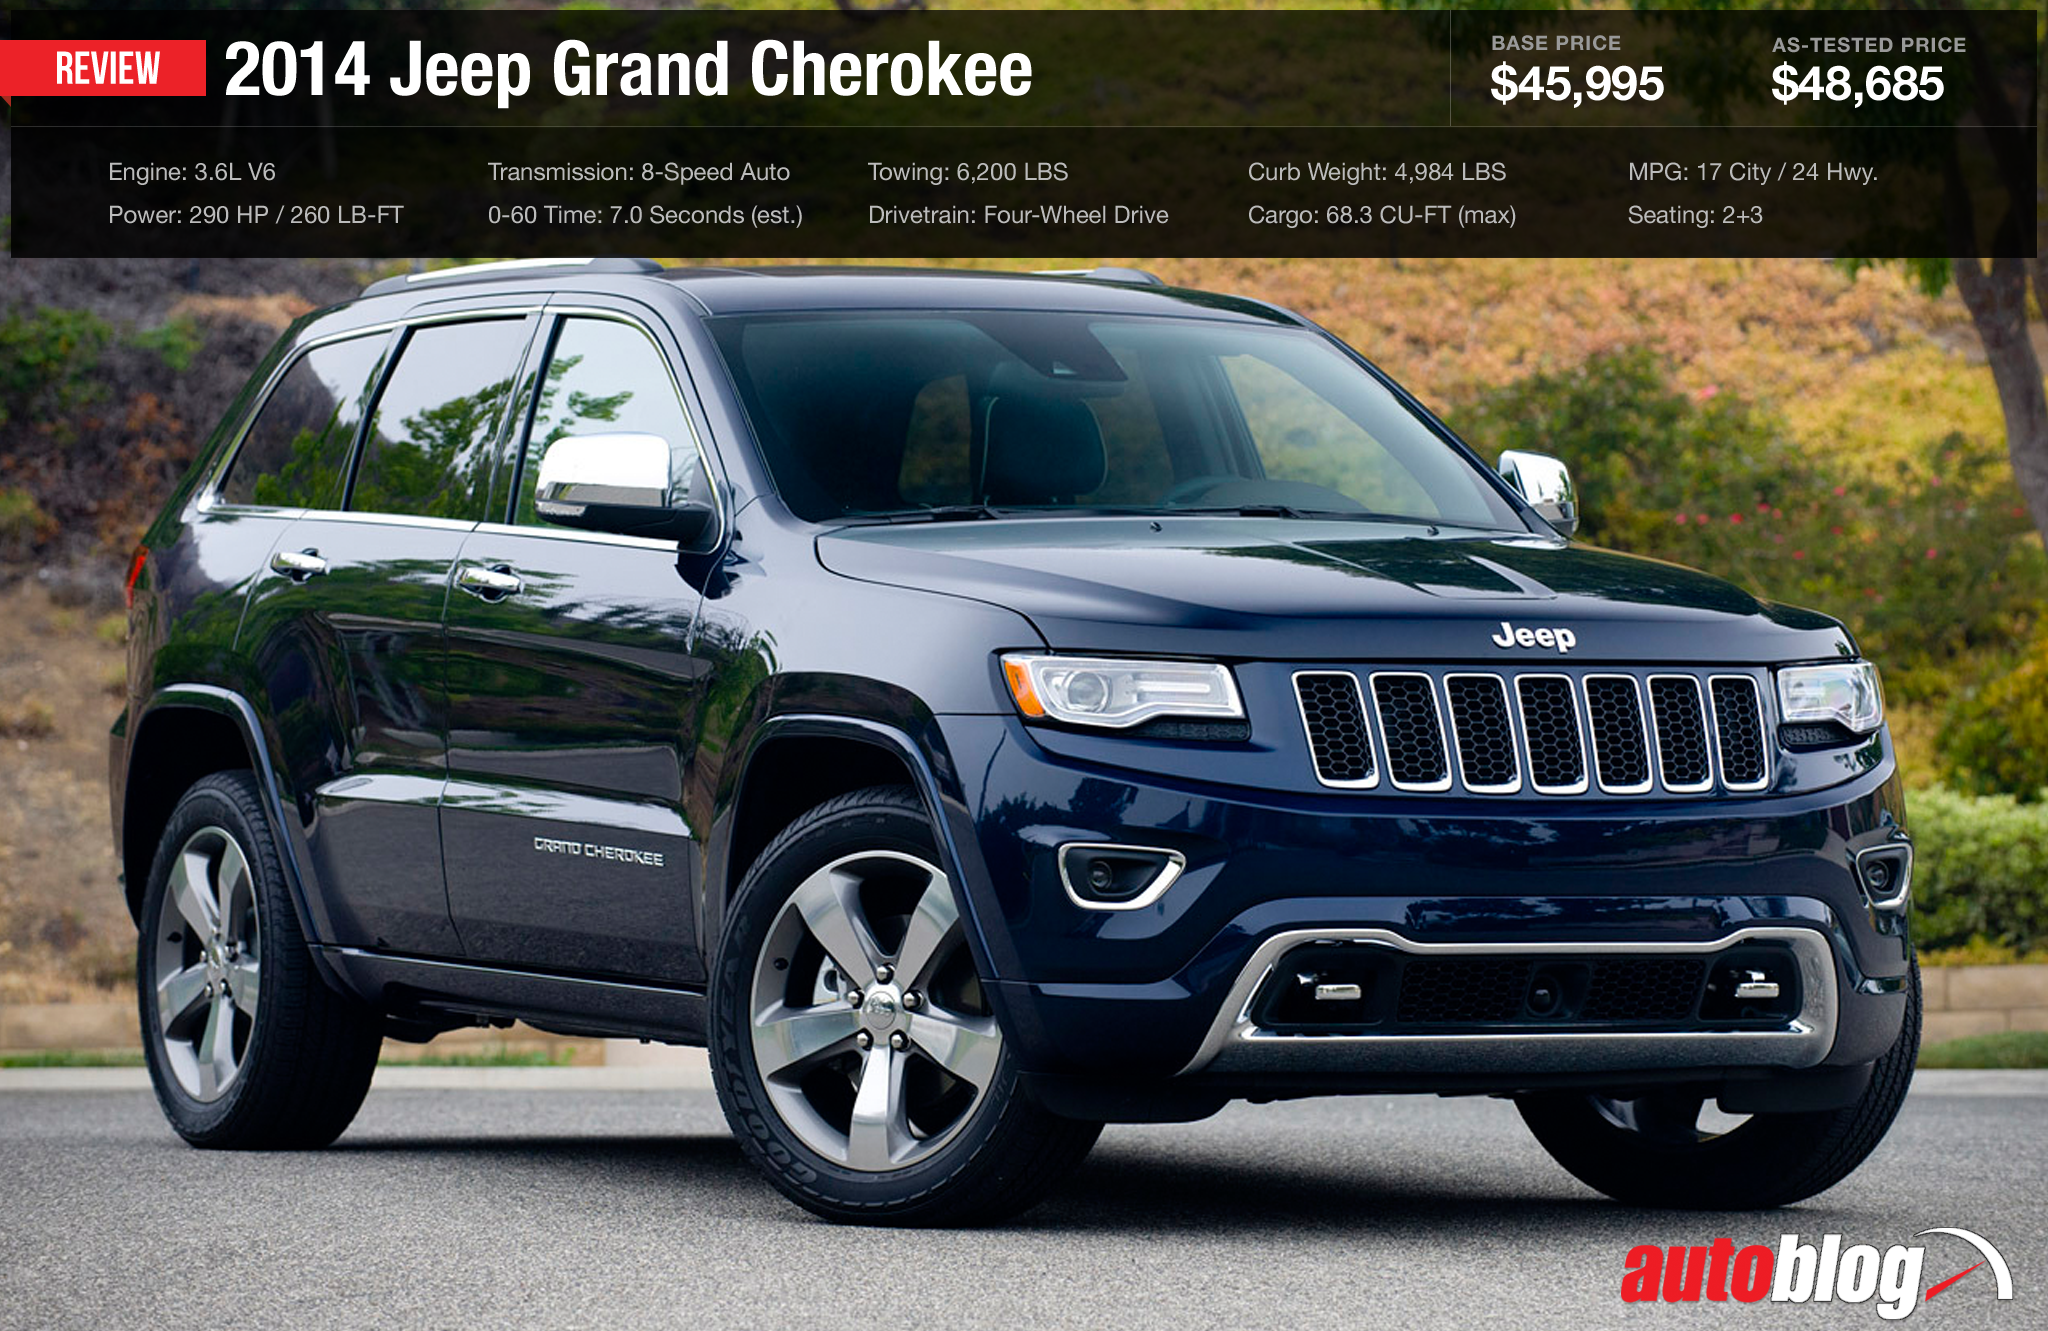 It Appears That Jeep Has Finally Delivered One Of The Best Overall